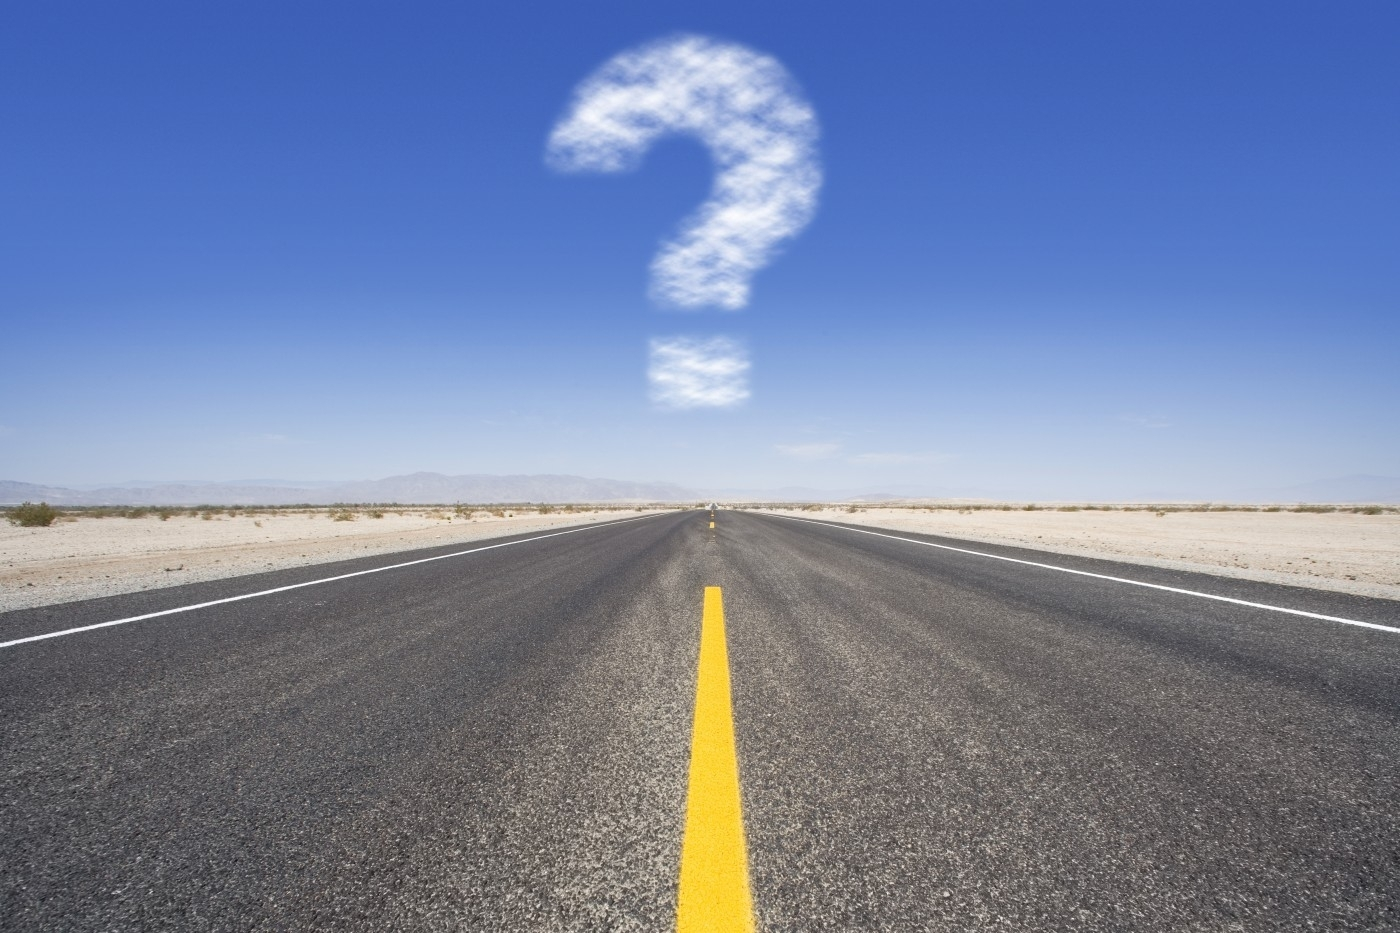 Image: 0014502702, License: Royalty free, Question mark cloud hovering over remote desert road, Property Release: Yes, Model Release: No or not aplicable, Credit line: Profimedia-Red Dot, Juice Images